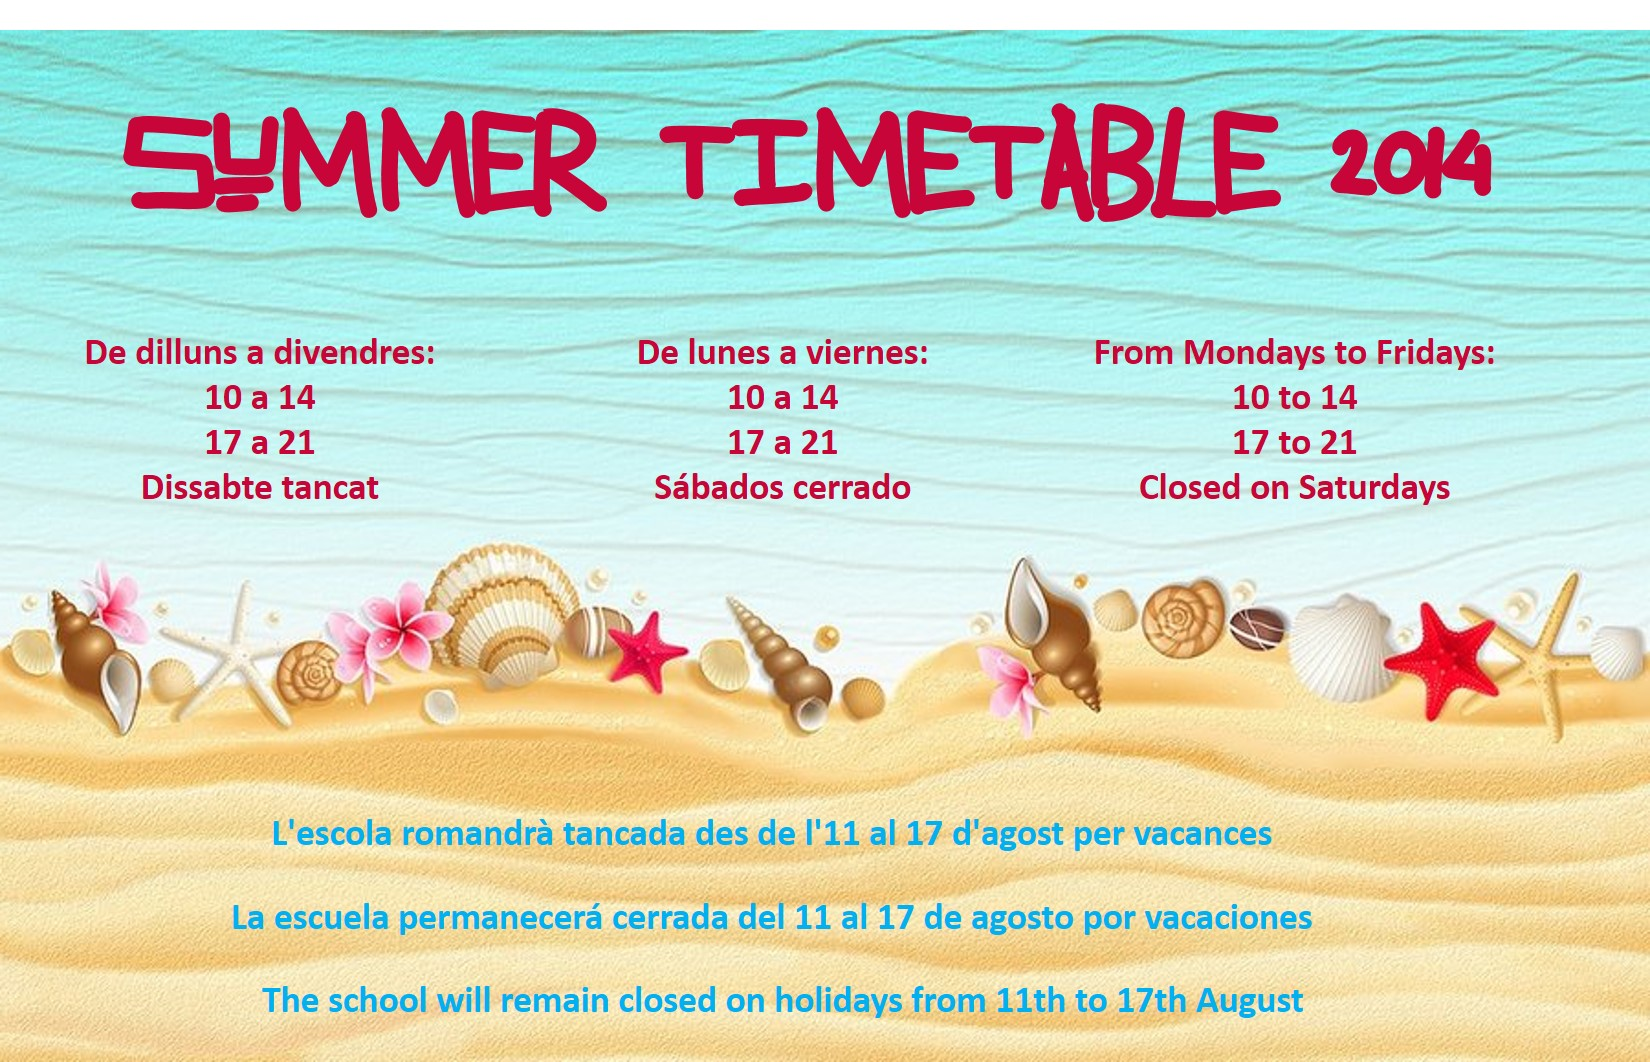 timetable summer 2014